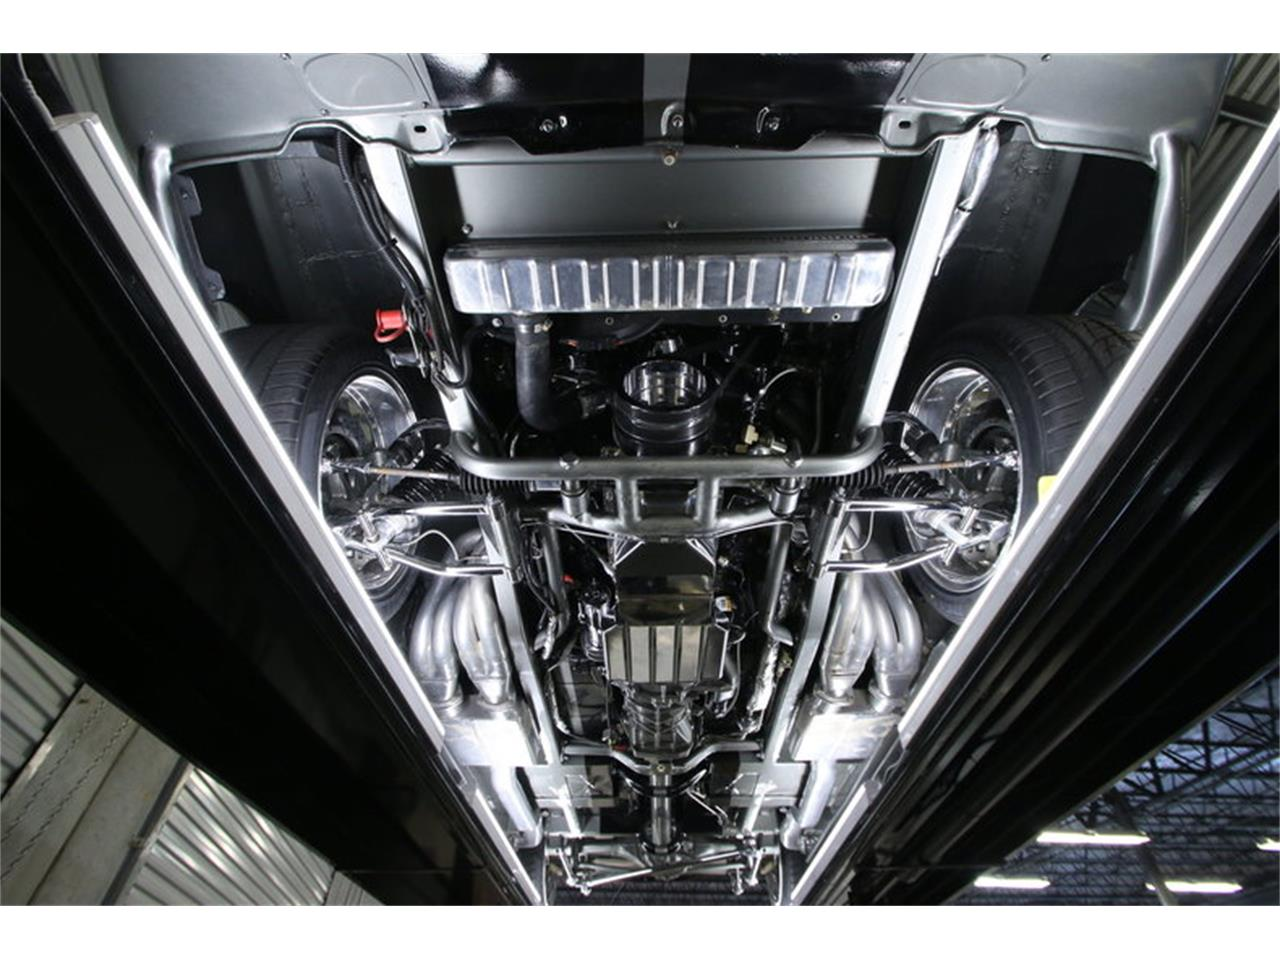 Large Picture of Classic 1971 Ford Mustang Fastback Restomod - $99,995.00 Offered by Streetside Classics - Tampa - MGHW